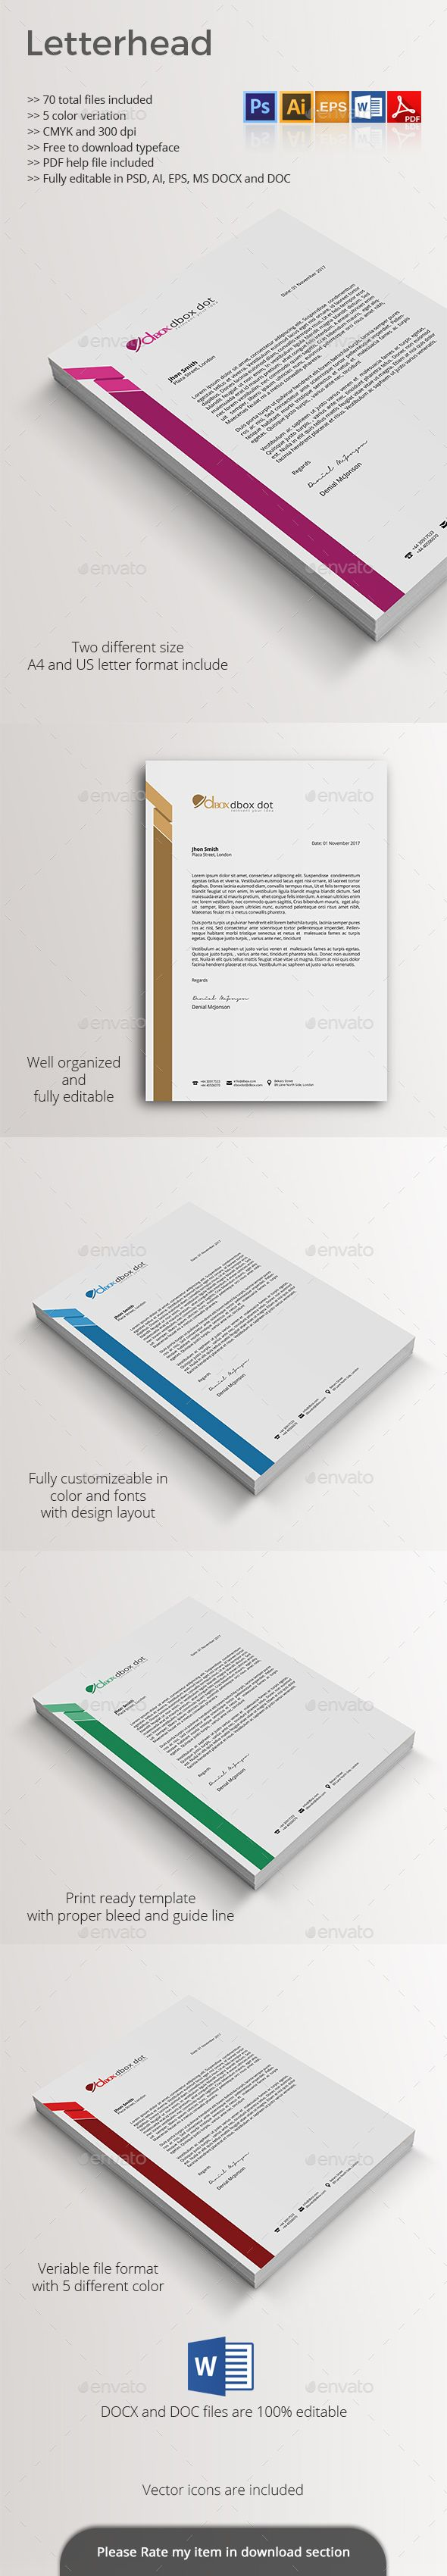 how to create a letterhead in illustrator for word